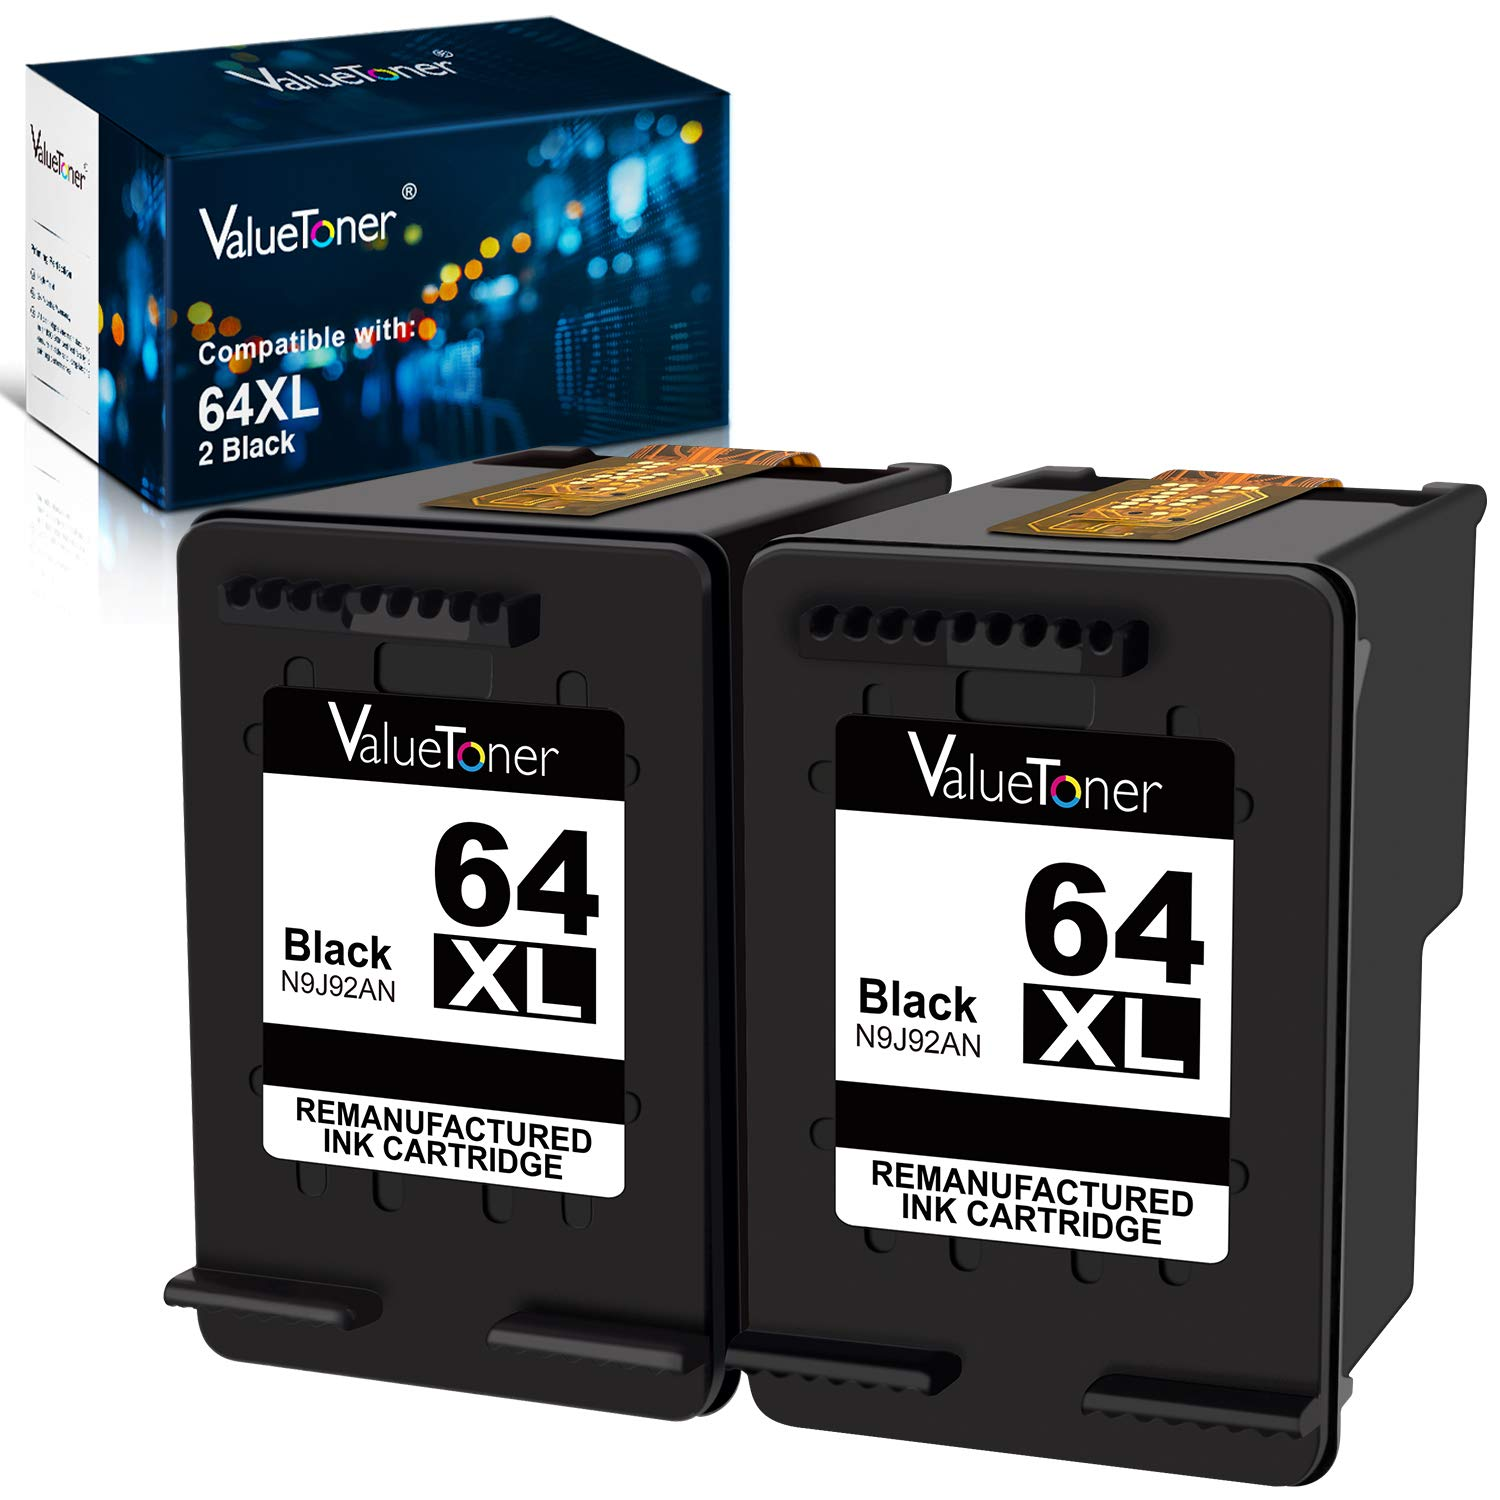 Valuetoner Remanufactured Ink Cartridge Replacement for HP 64XL 64 XL Used in Envy Photo 7858 7855 7155 6255 6252 7120 6232 7158 7164, Envy 5542 Printer (2 Black)